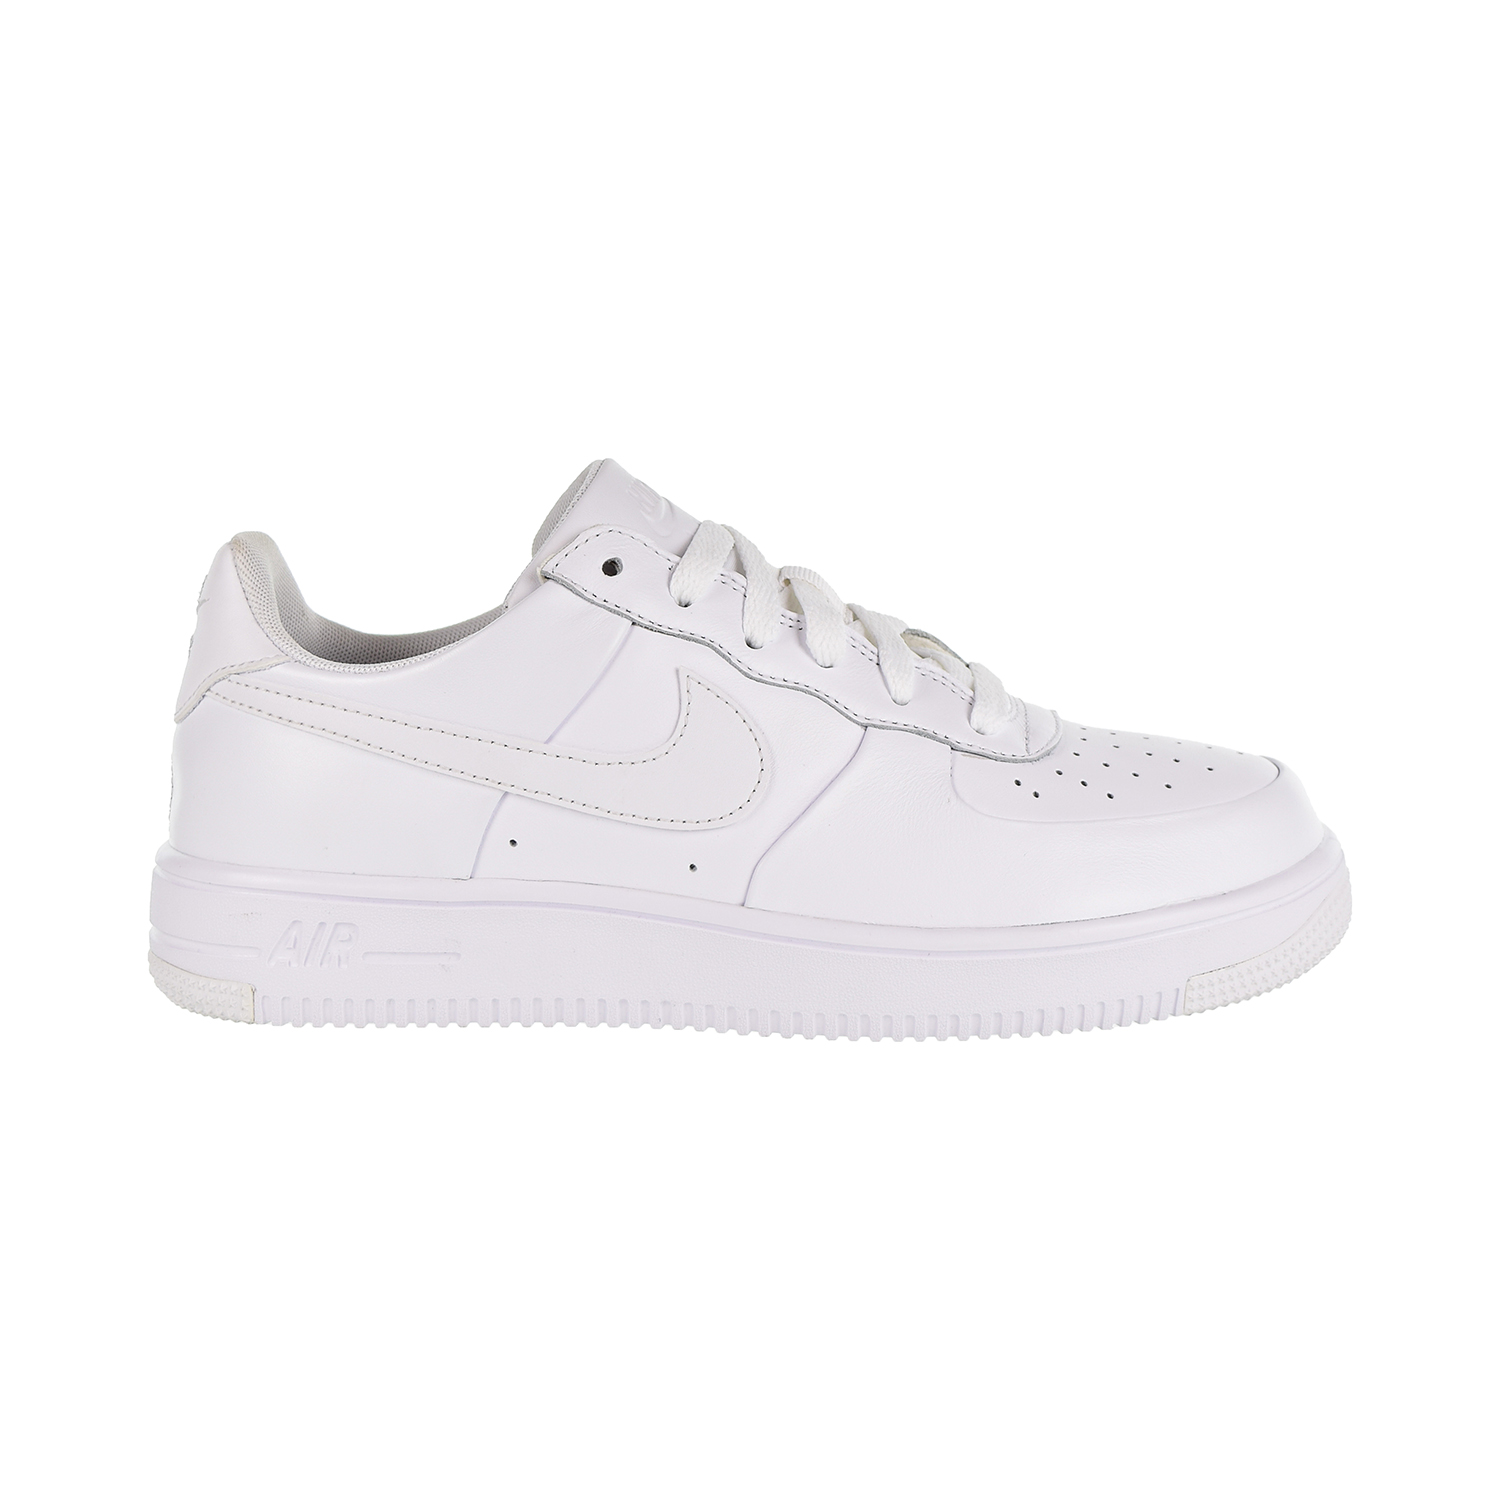 the best attitude c668d a4106 Details about Nike Air Force 1 Ultraforce GS Big Kids  Shoes White White  White 845128-101